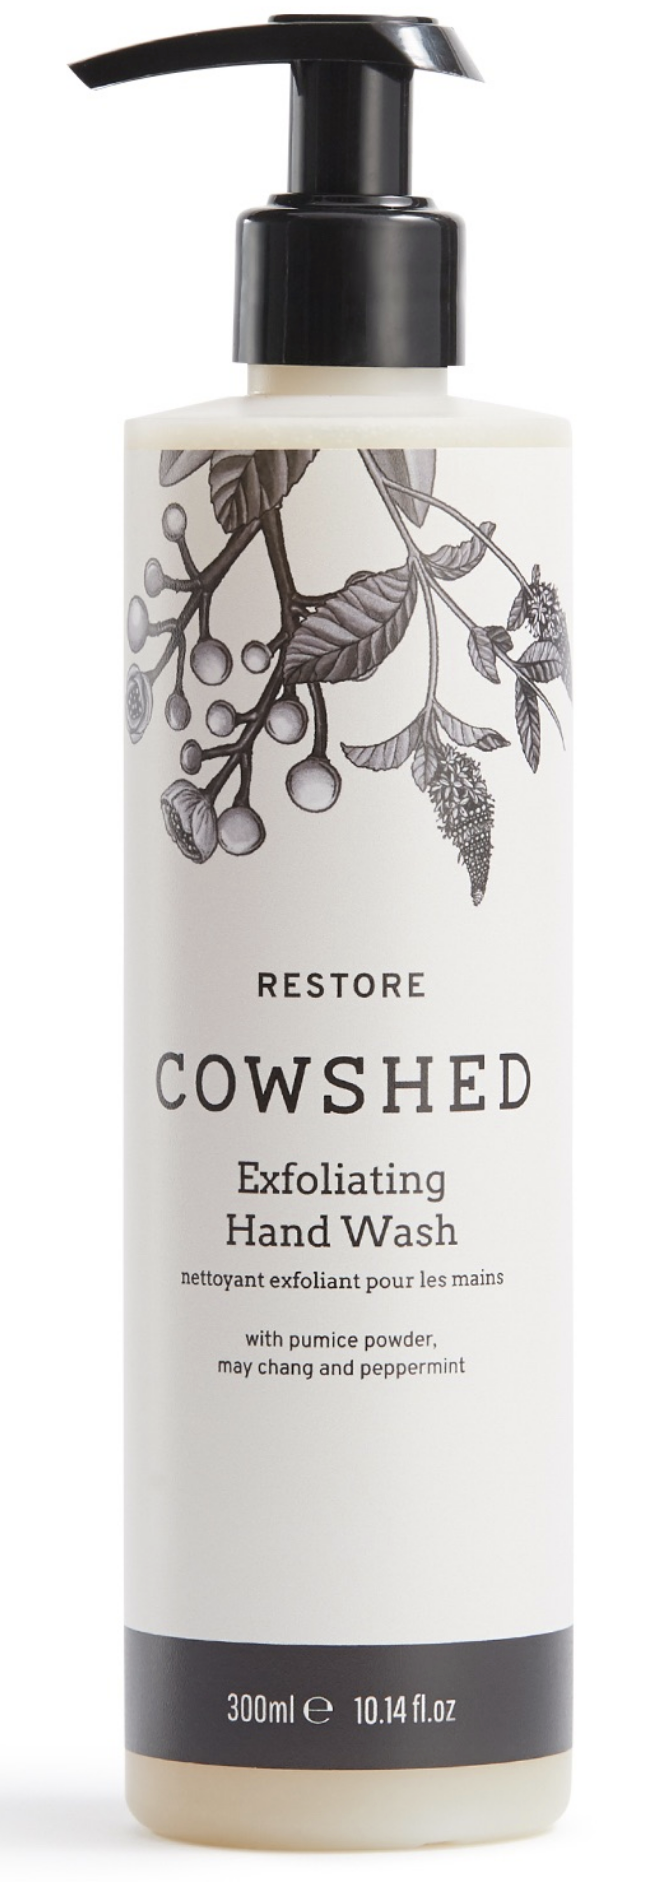 cowshed-spa-hand-soaps